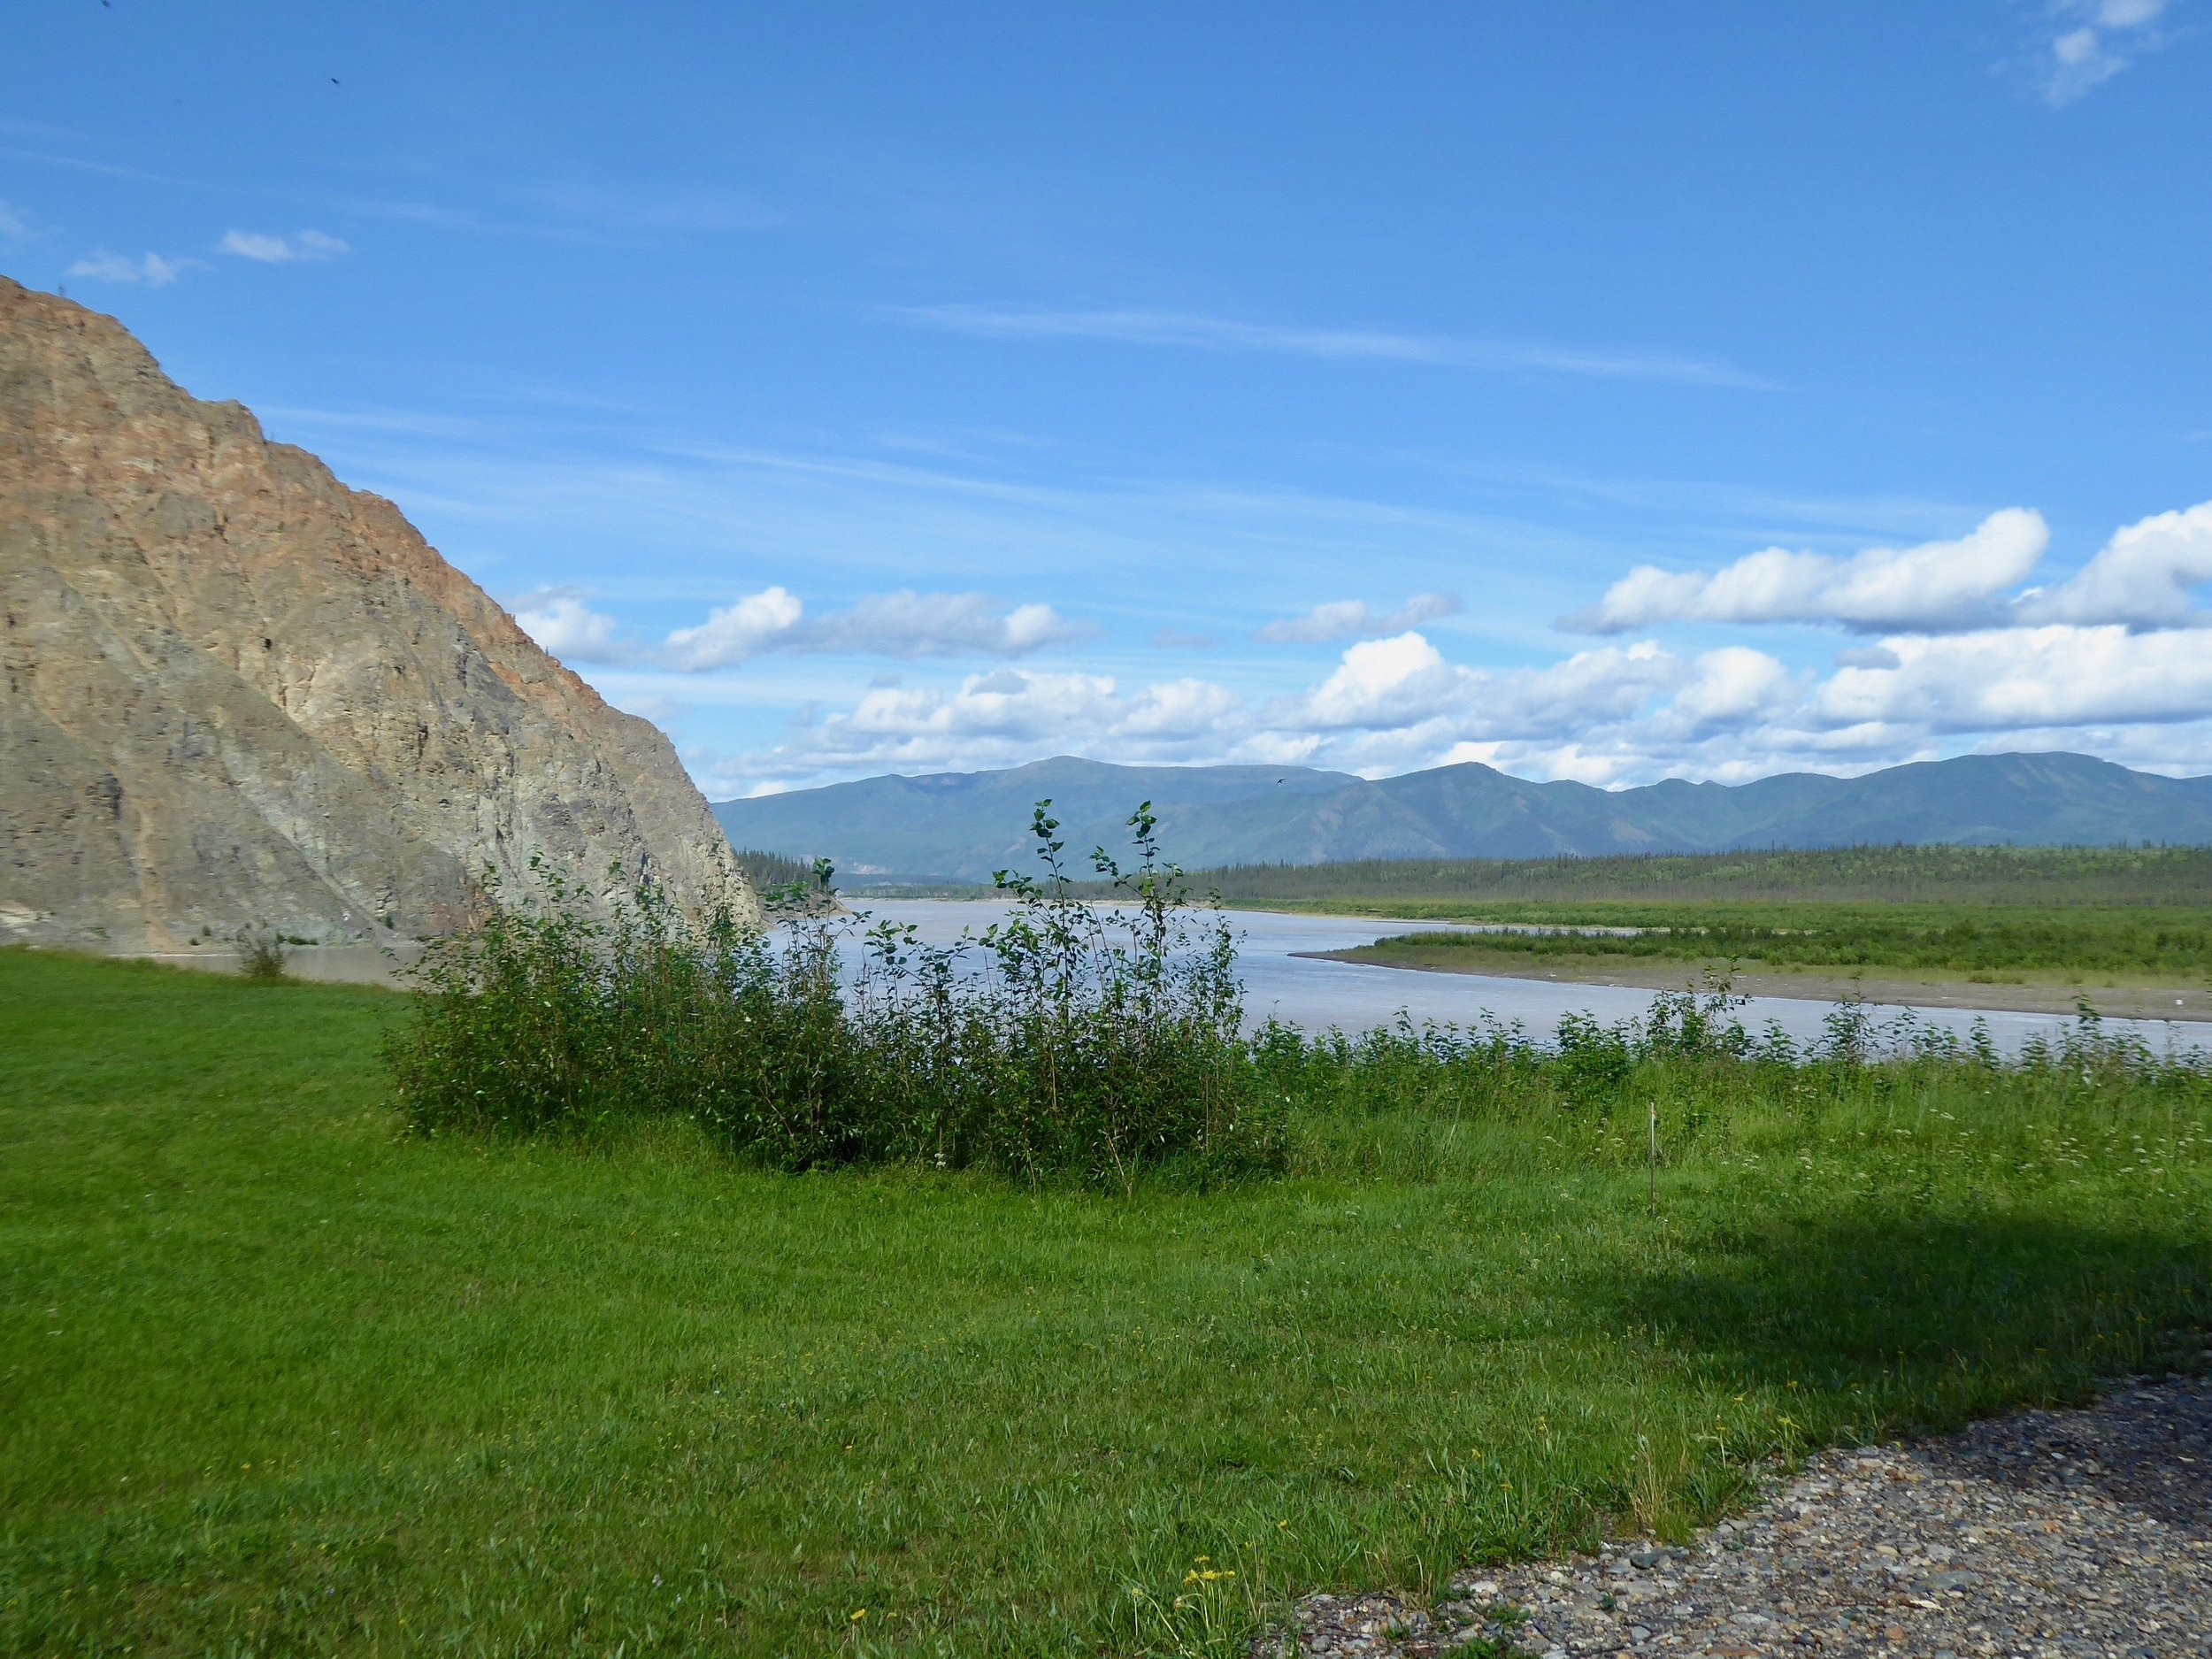 We will now be paddling till we reach Circle in what is known as the Yukon-Charley Rivers National Preserve.